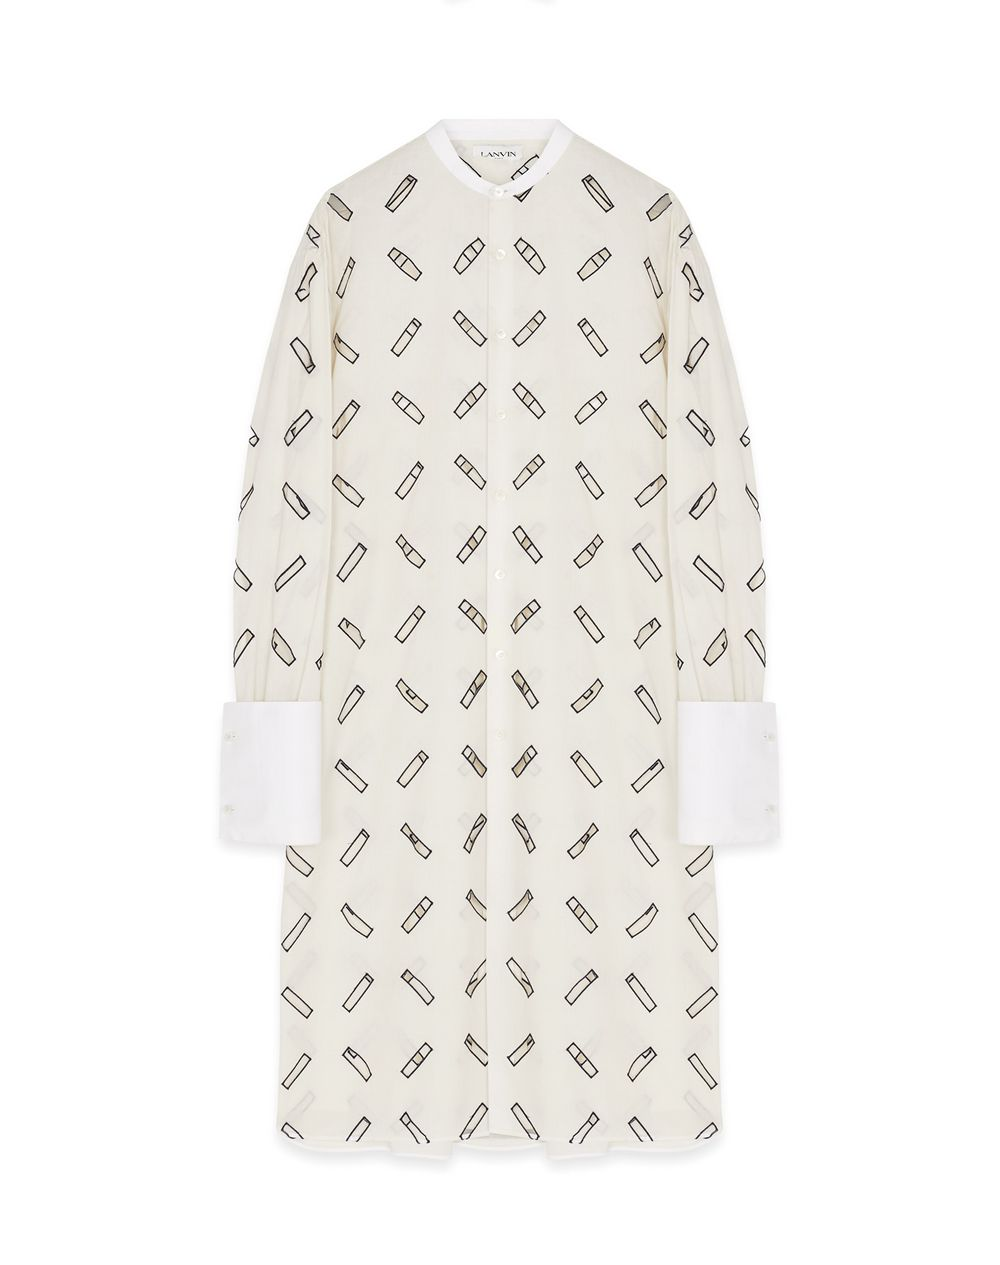 CUT-OUT SHIRT DRESS - Lanvin